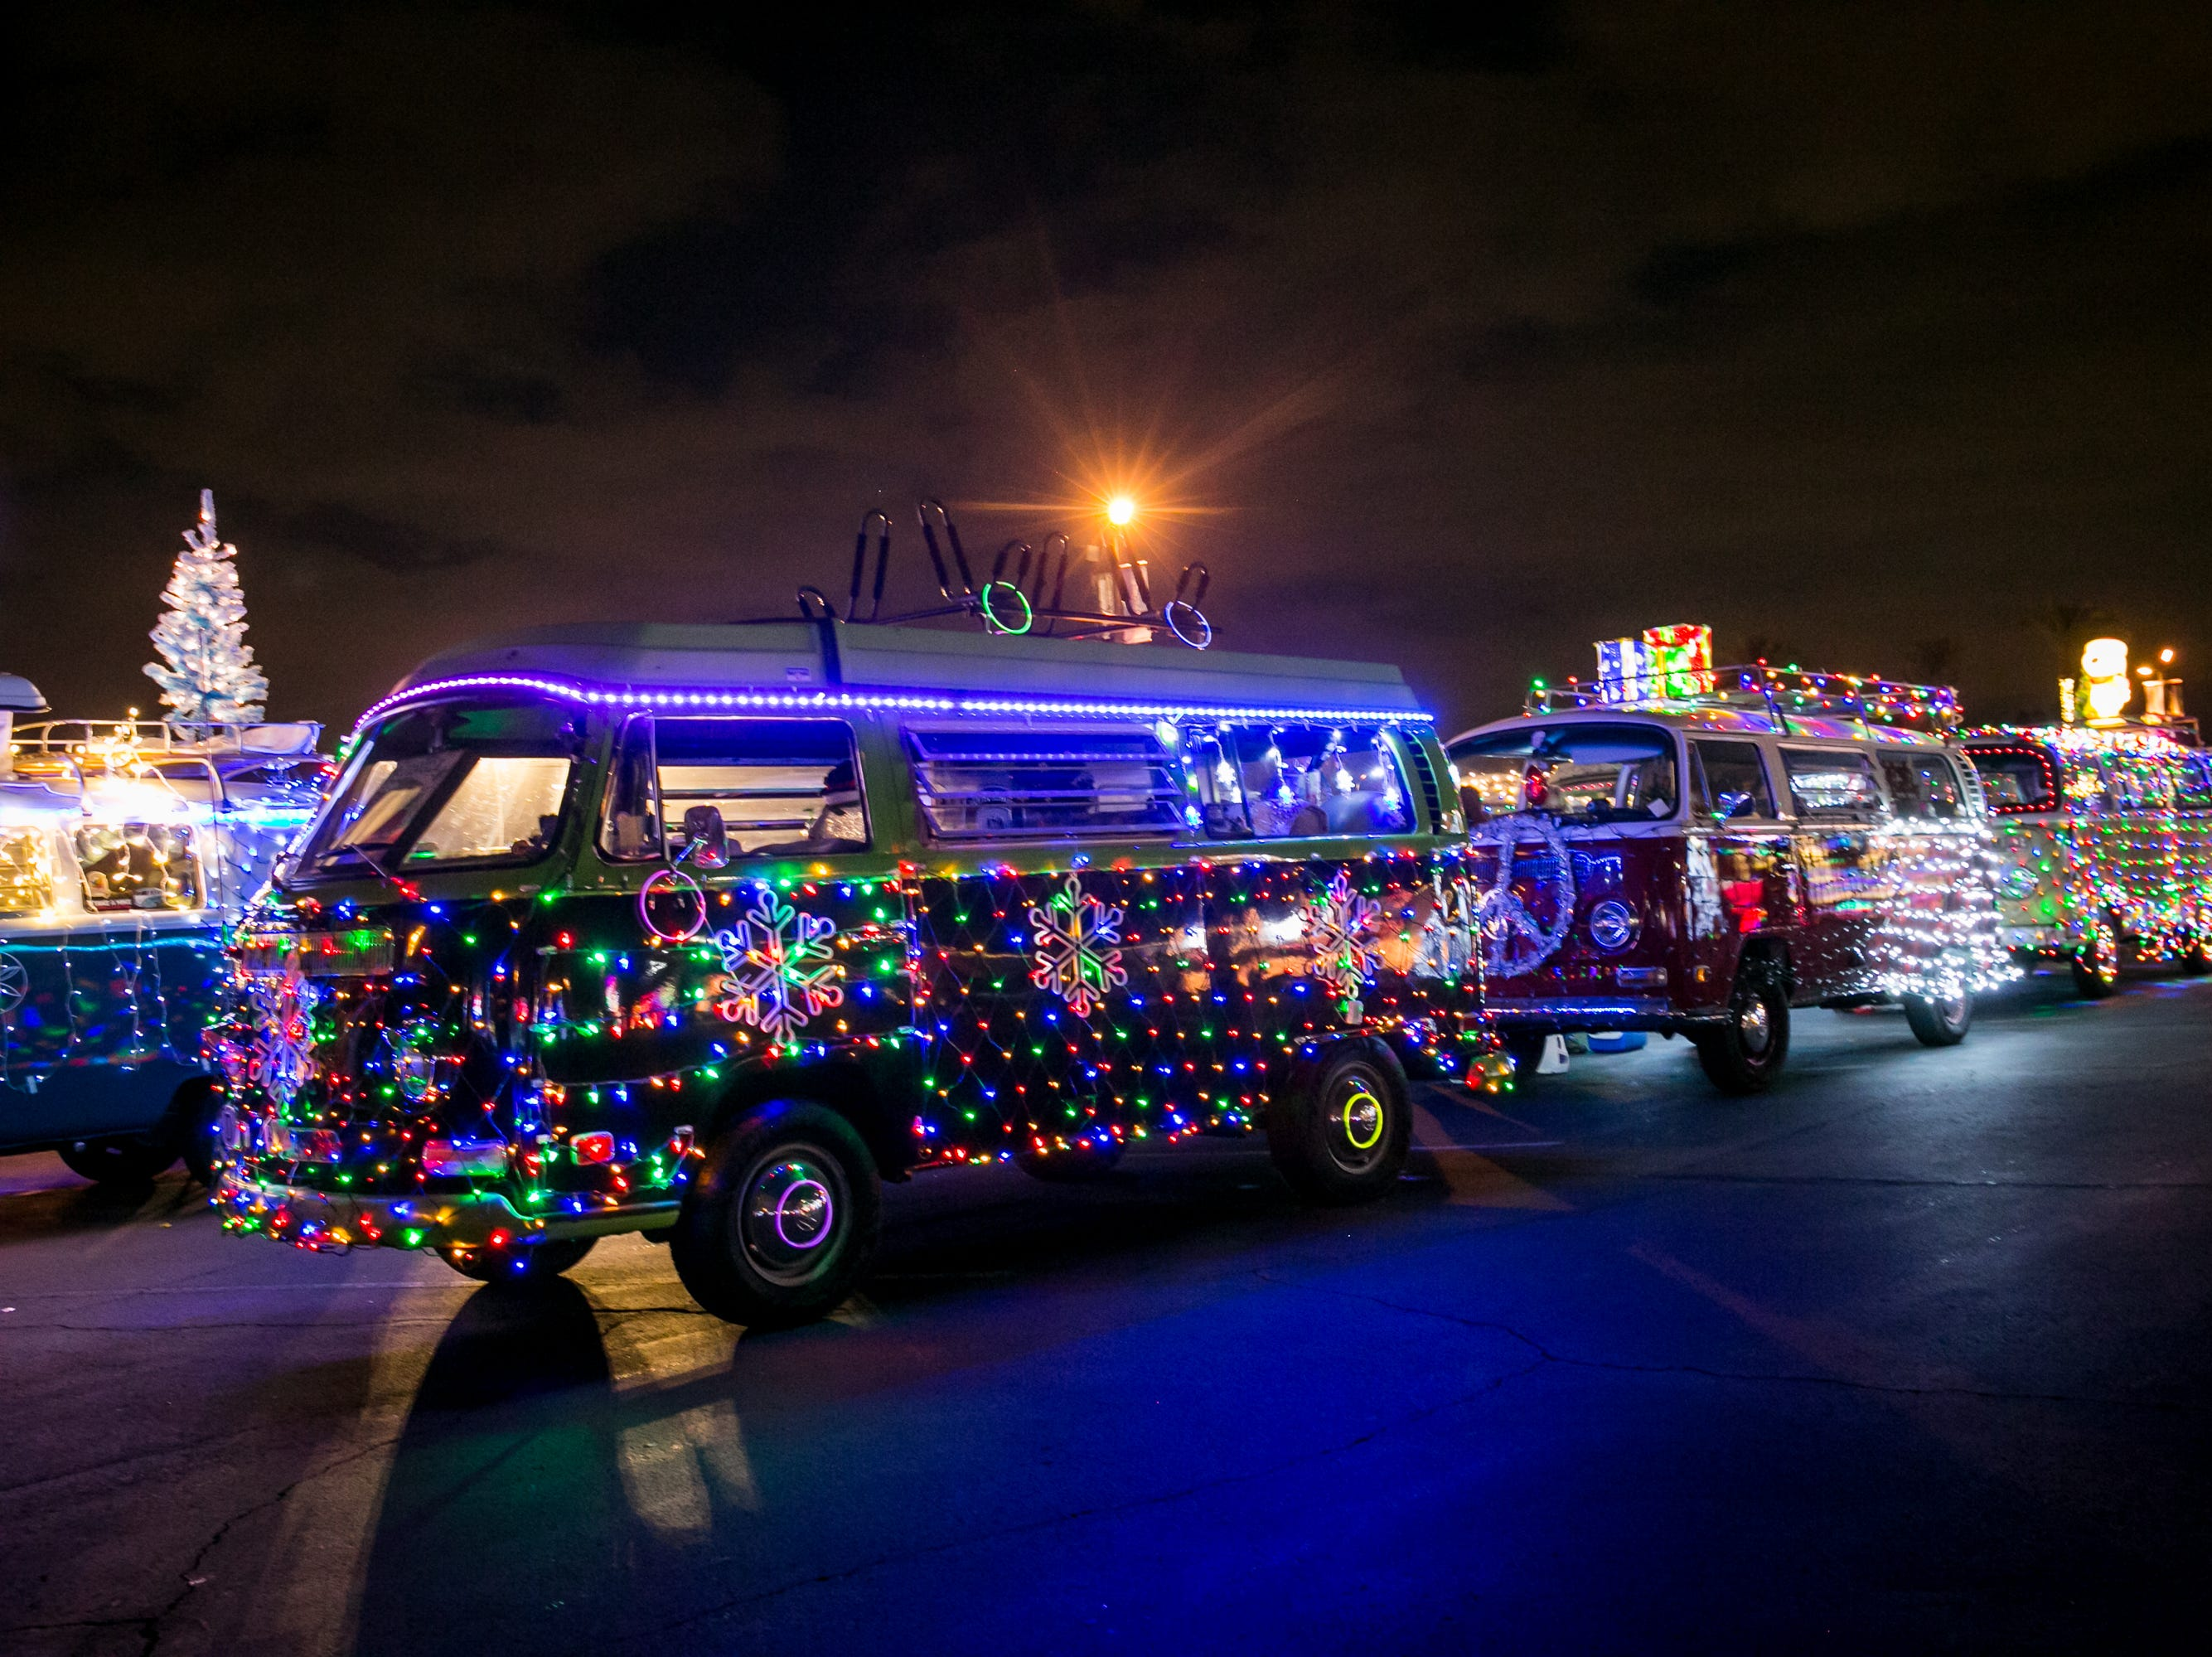 There were tons of lit up Volkswagen buses during the APS Electric Light Parade in Central Phoenix on Saturday, December 1, 2018.